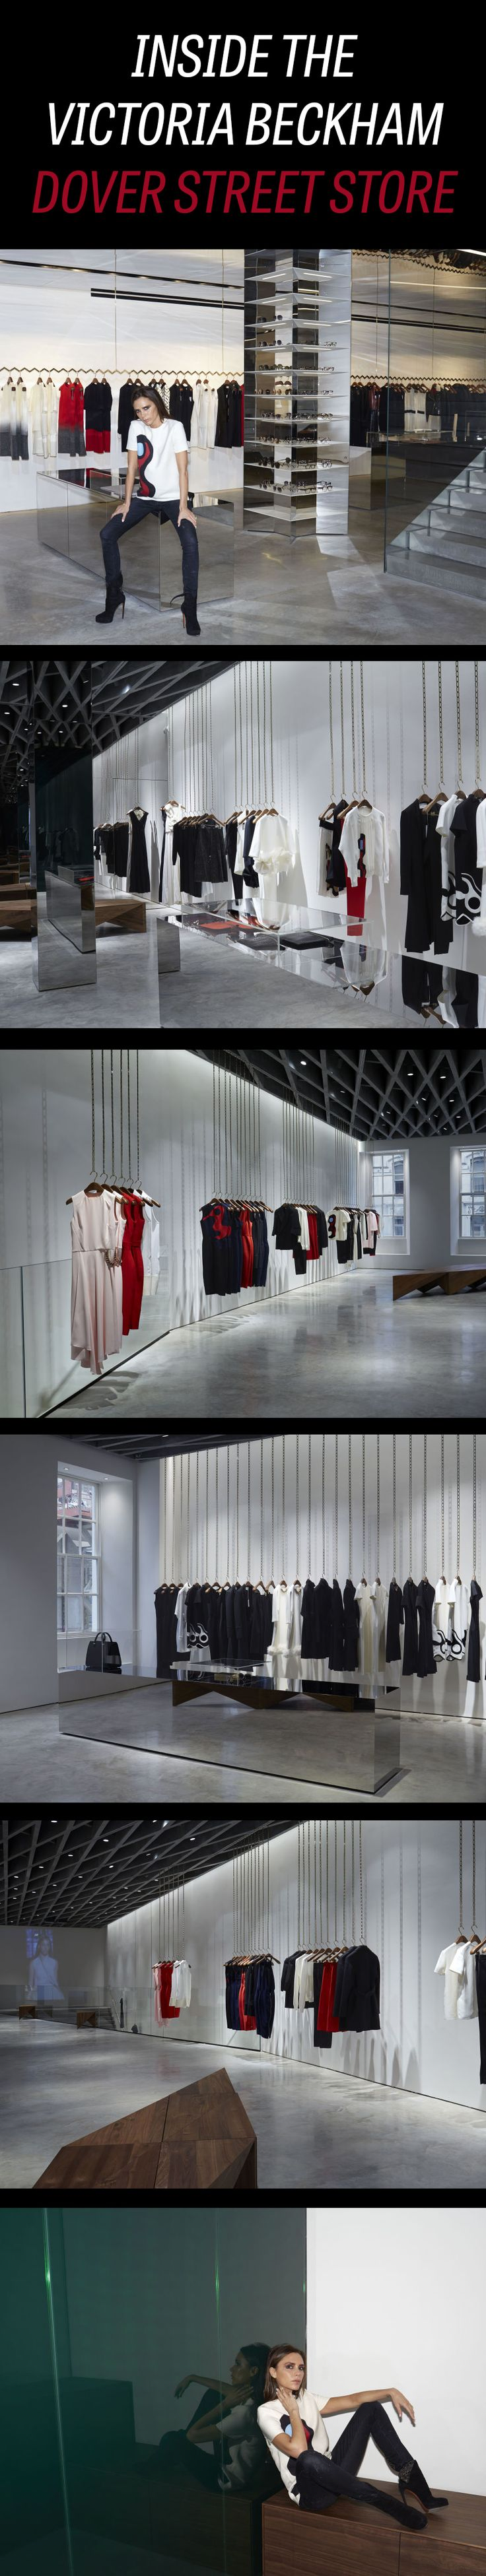 Victoria Beckham just opened her first store on London's Dover Street.